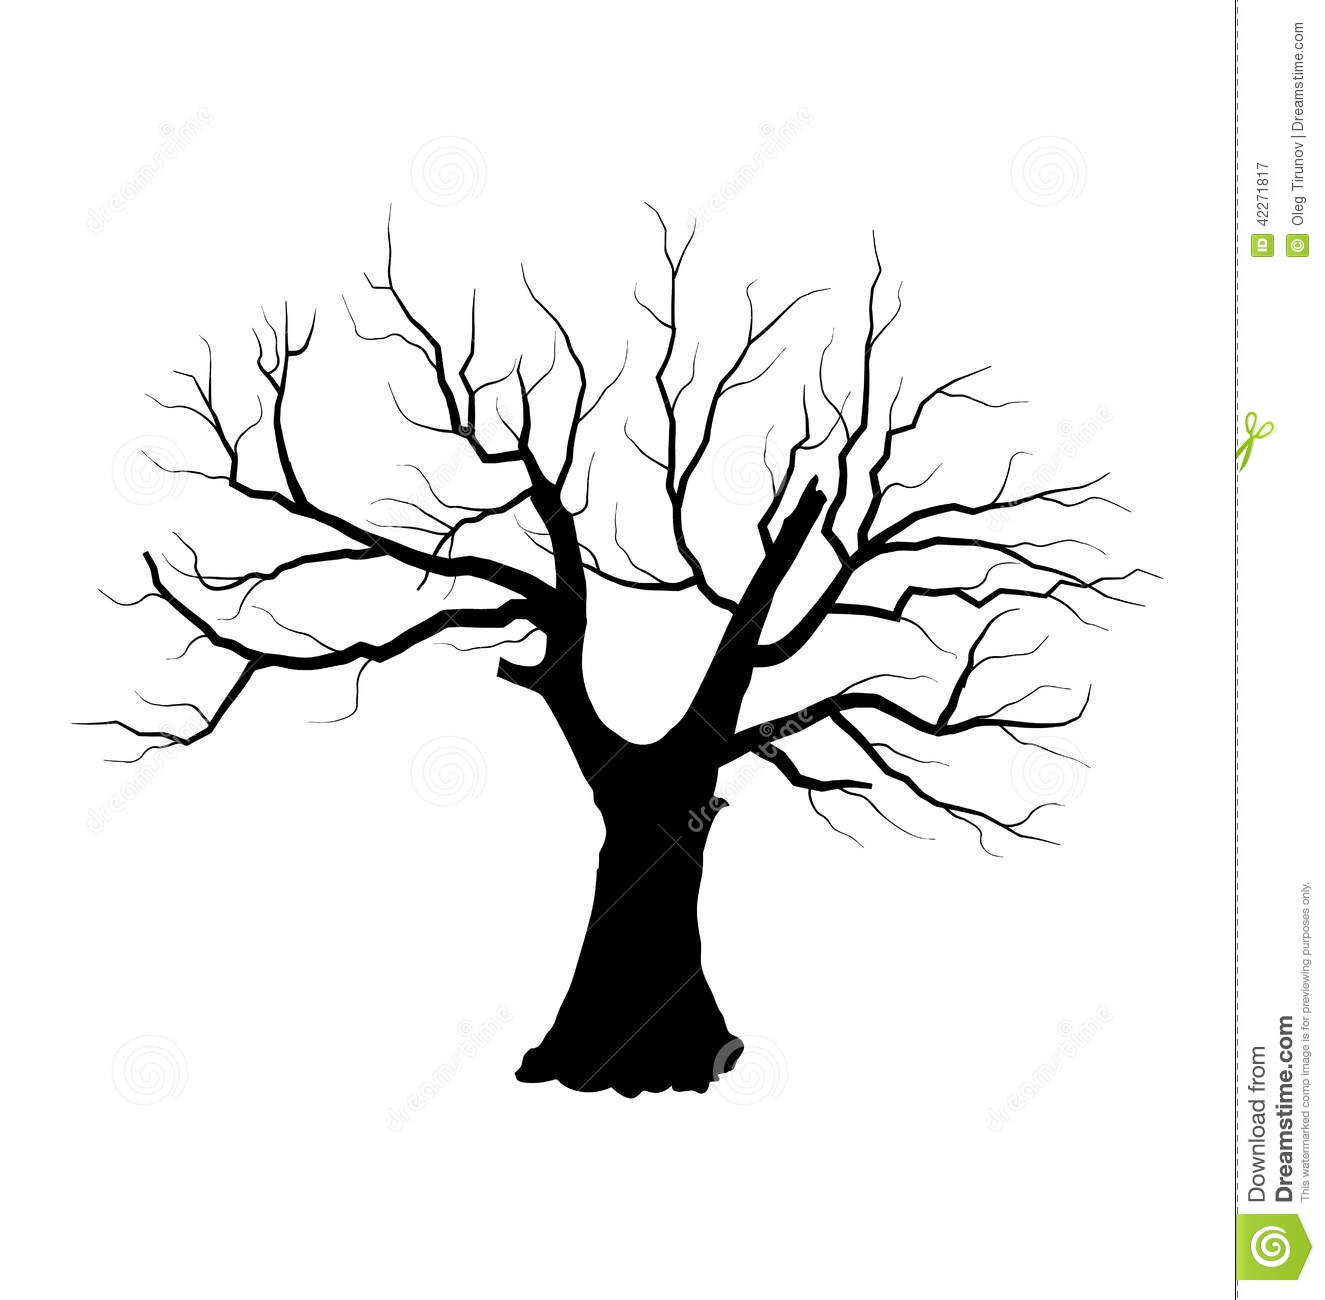 Illustration Sketch Of Dead Tree Without Leaves  Isolated On White